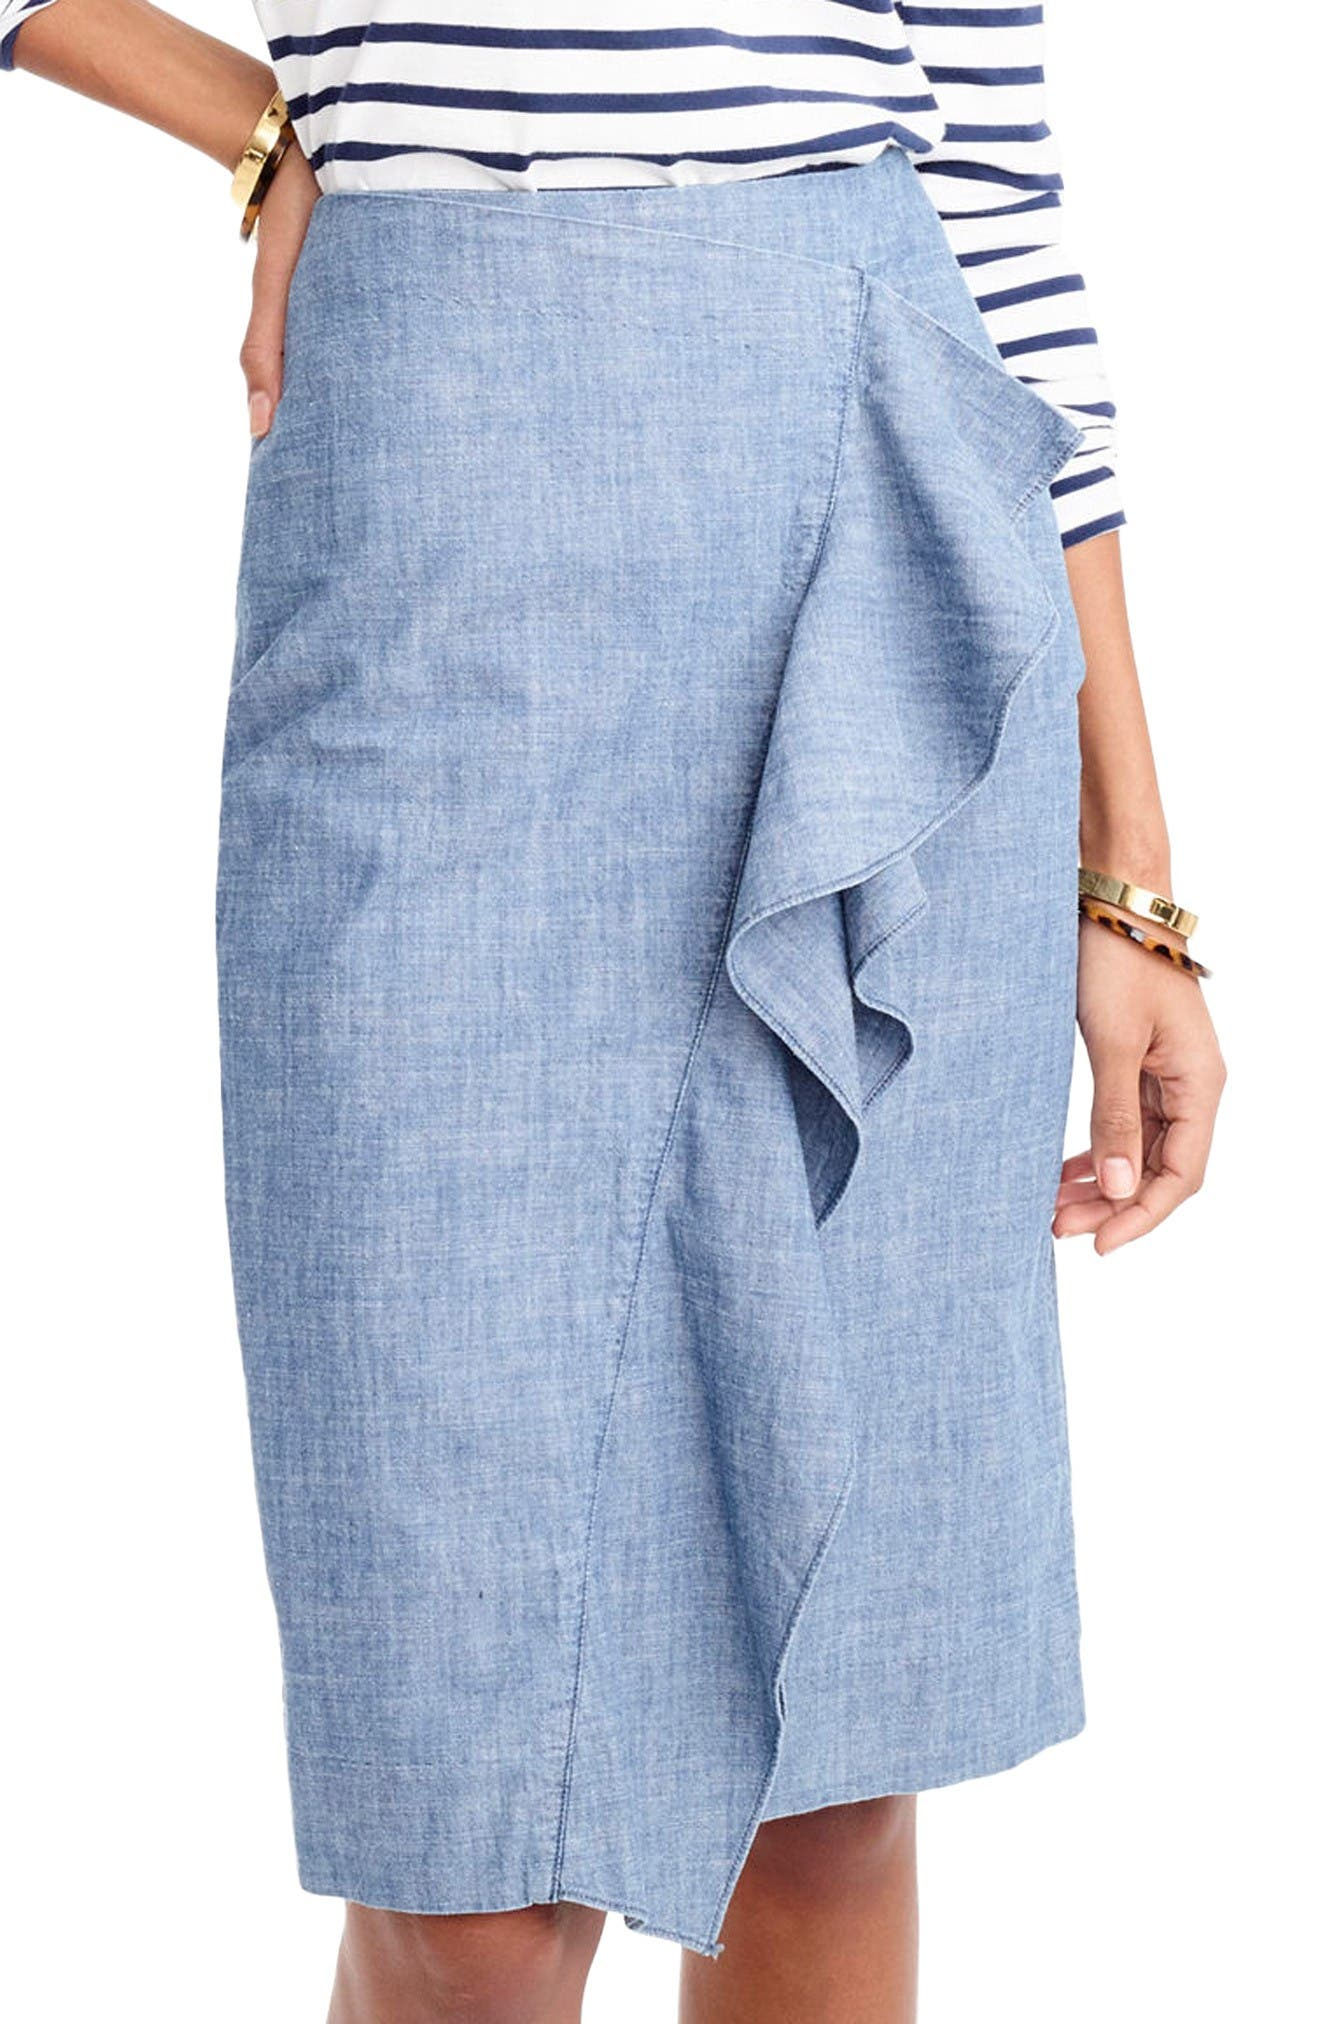 Alternate Image 3  - J.Crew Chambray Ruffle Skirt